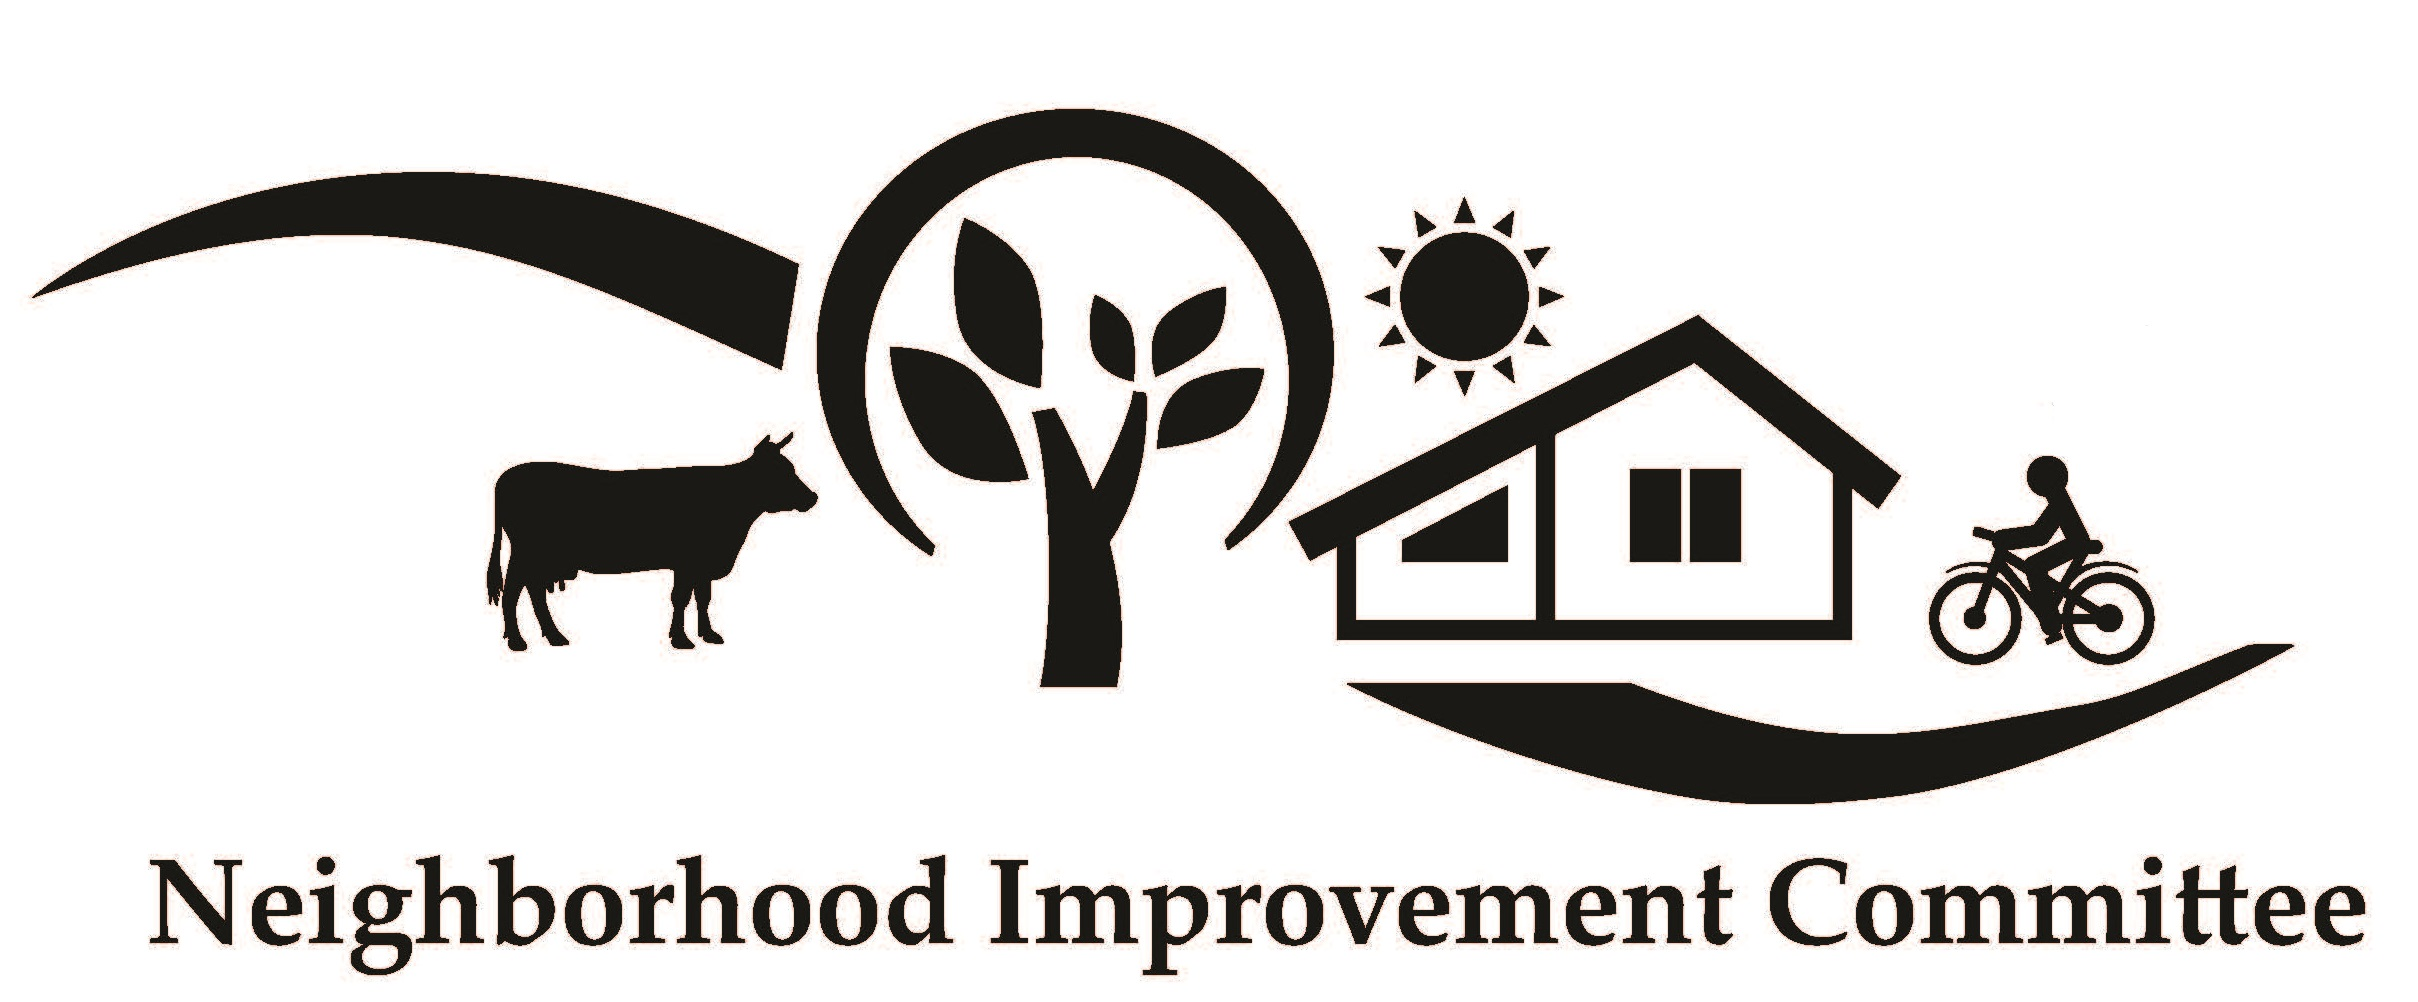 Neighborhood Improvement Committee Logo